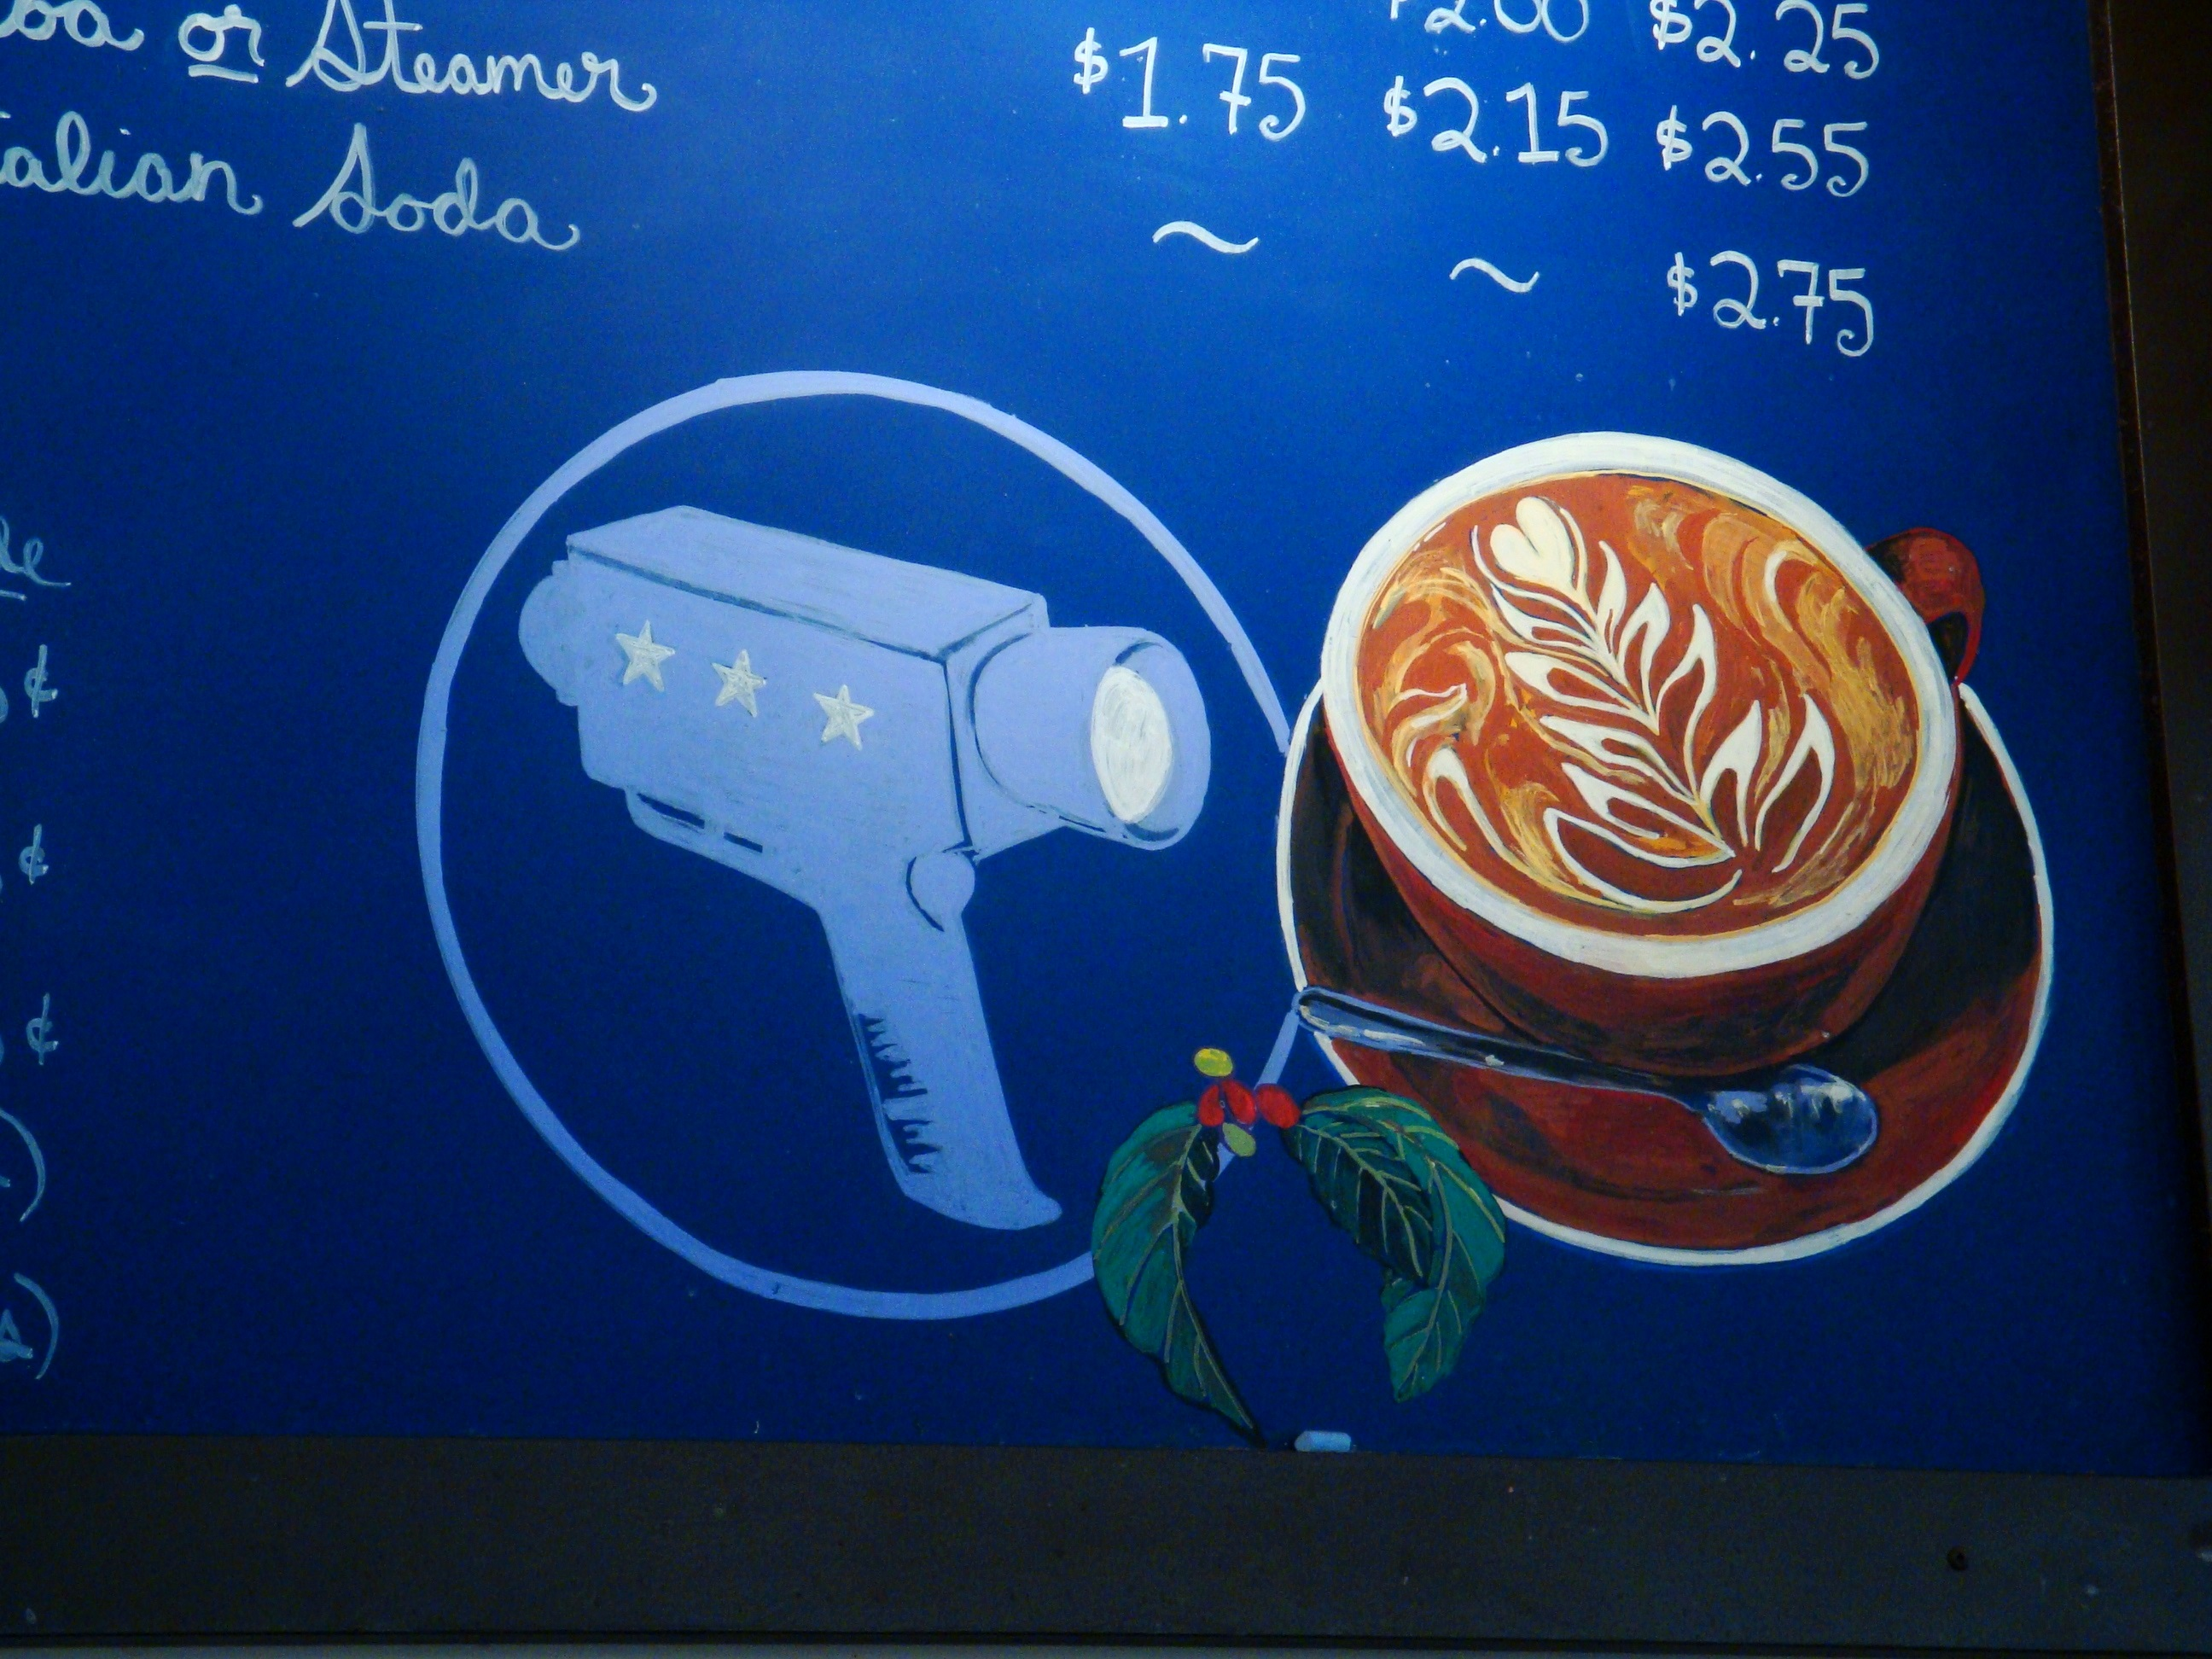 Verite Coffee, price board